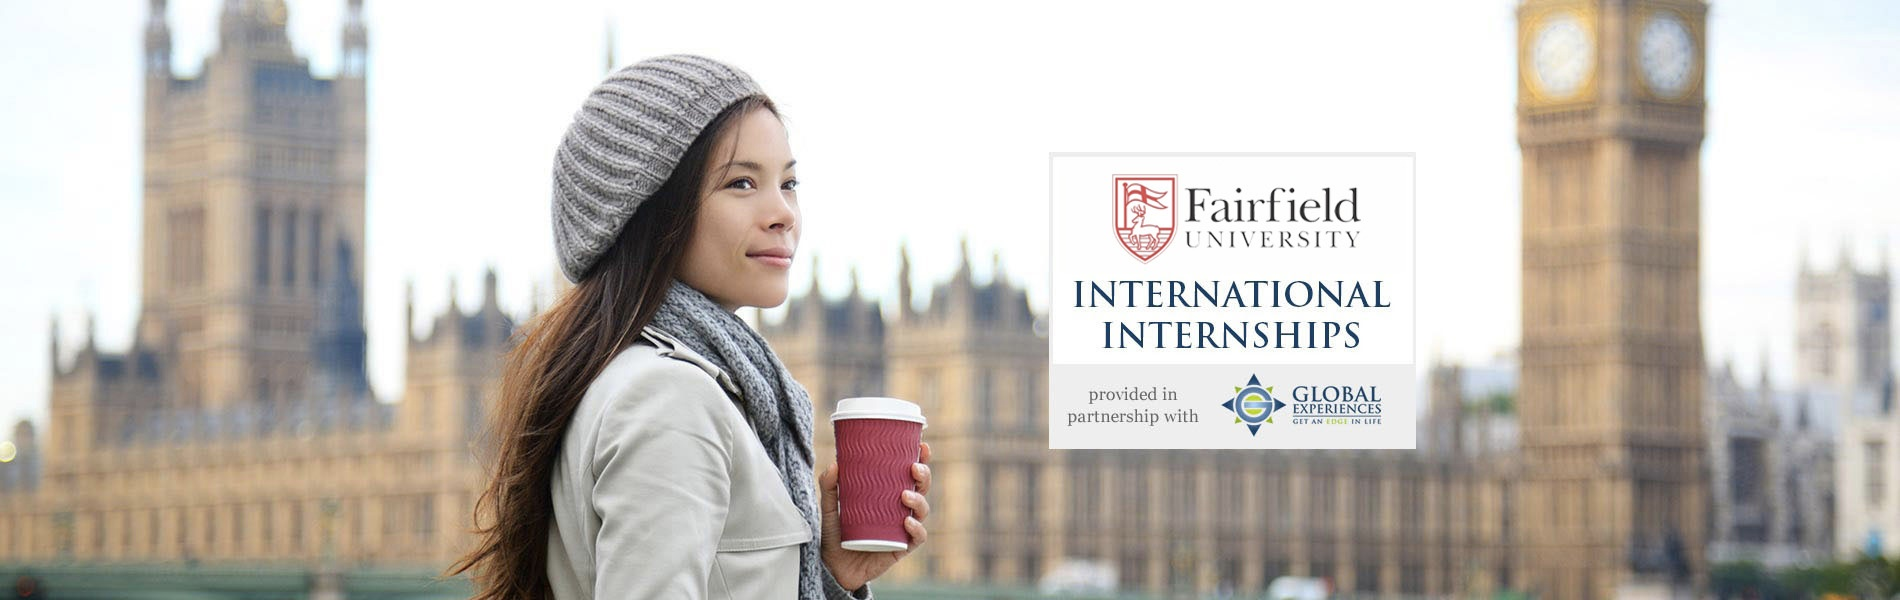 Fairfield University Intern Abroad